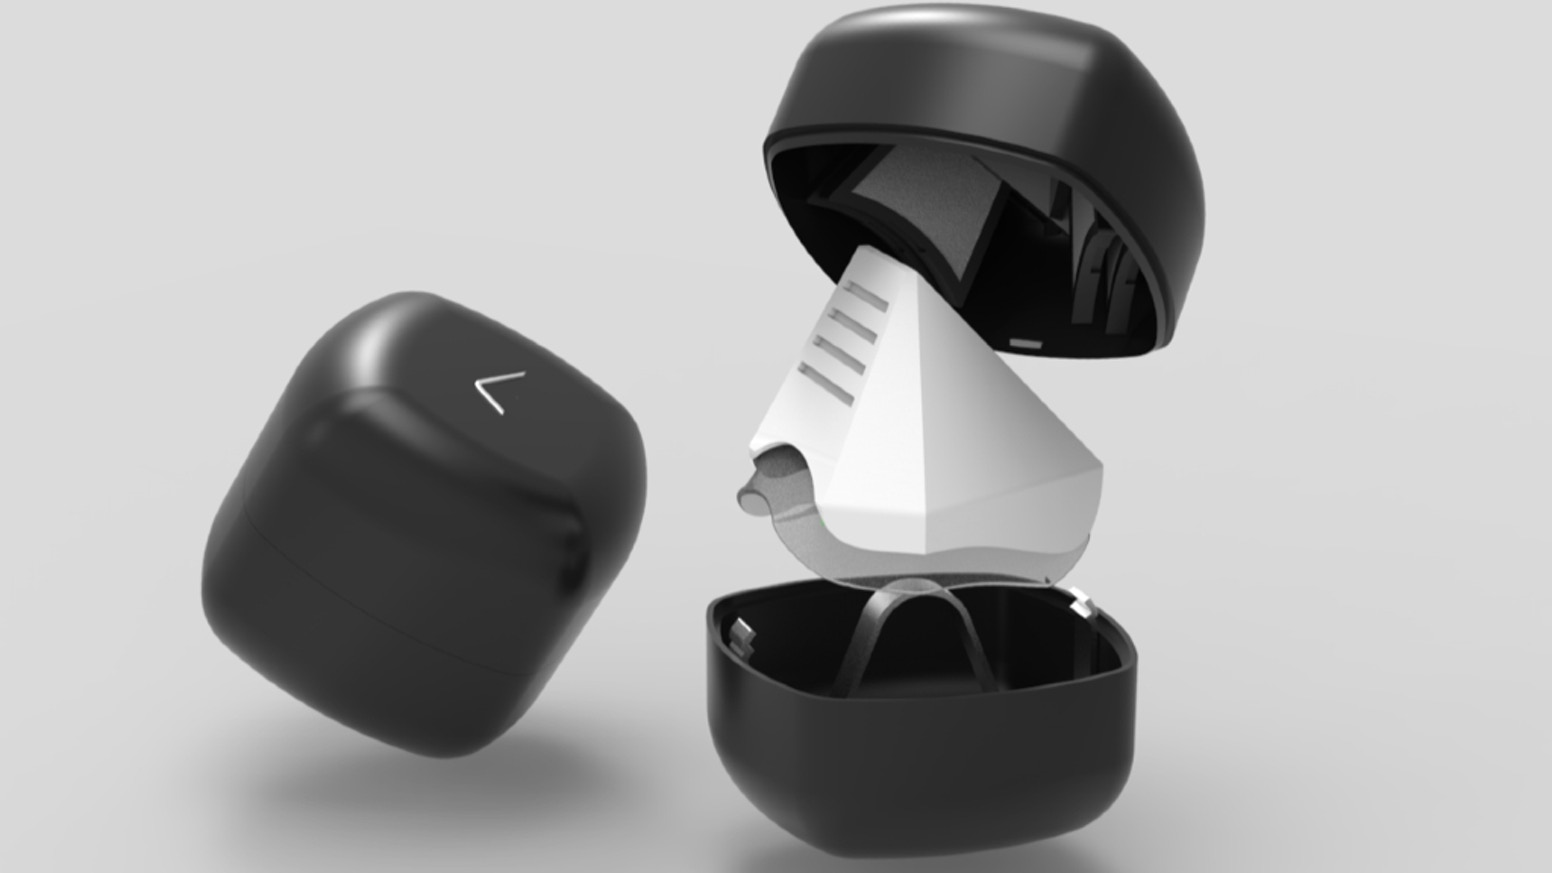 A sustainable device designed to protect against air pollution and allergies.